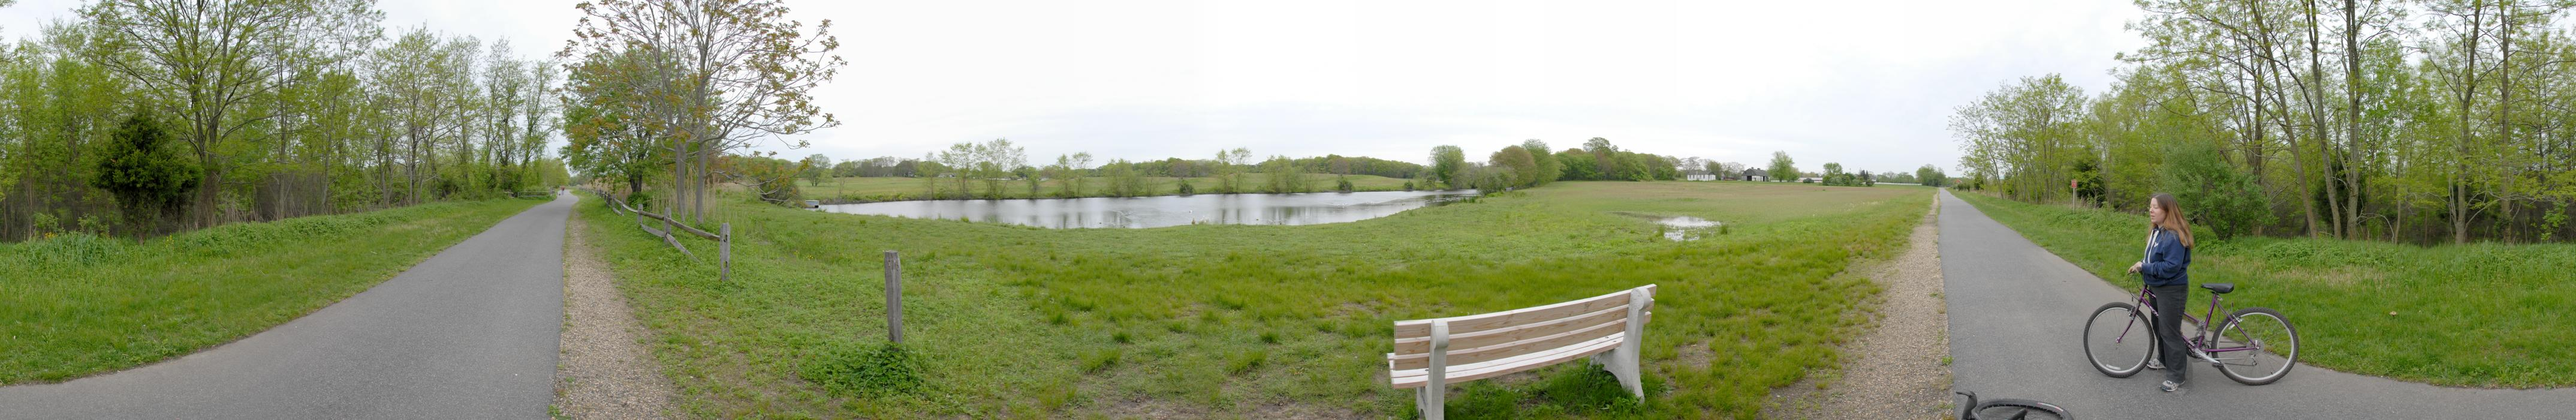 Jackie, bench, grass, panoramic, path, paved, pond, trees, water